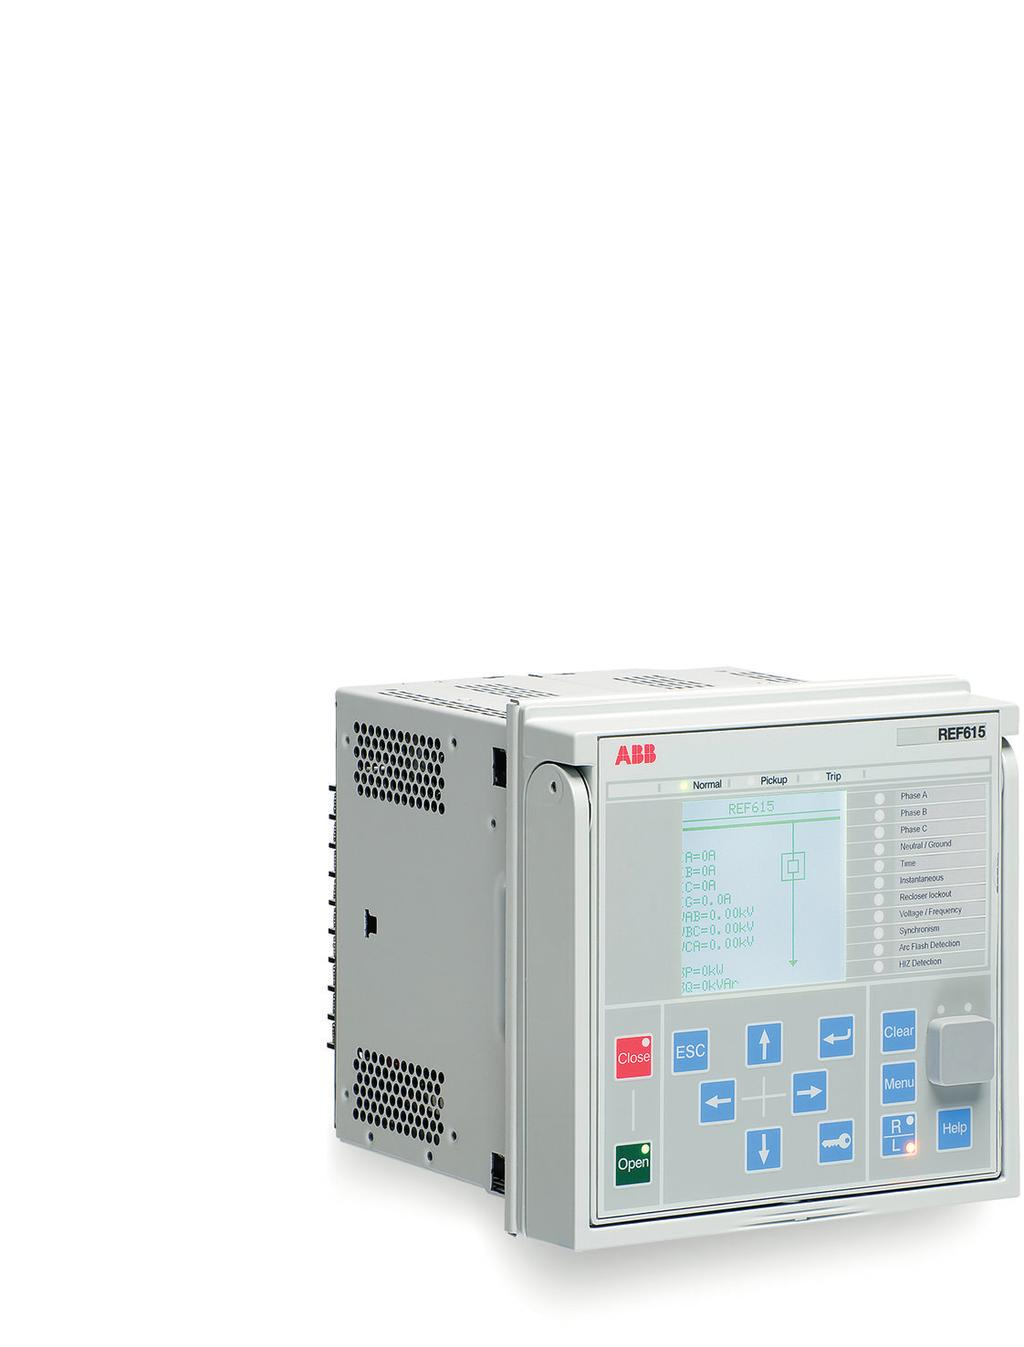 RELION 615 SERIES Feeder Protection and Control REF615 ANSI